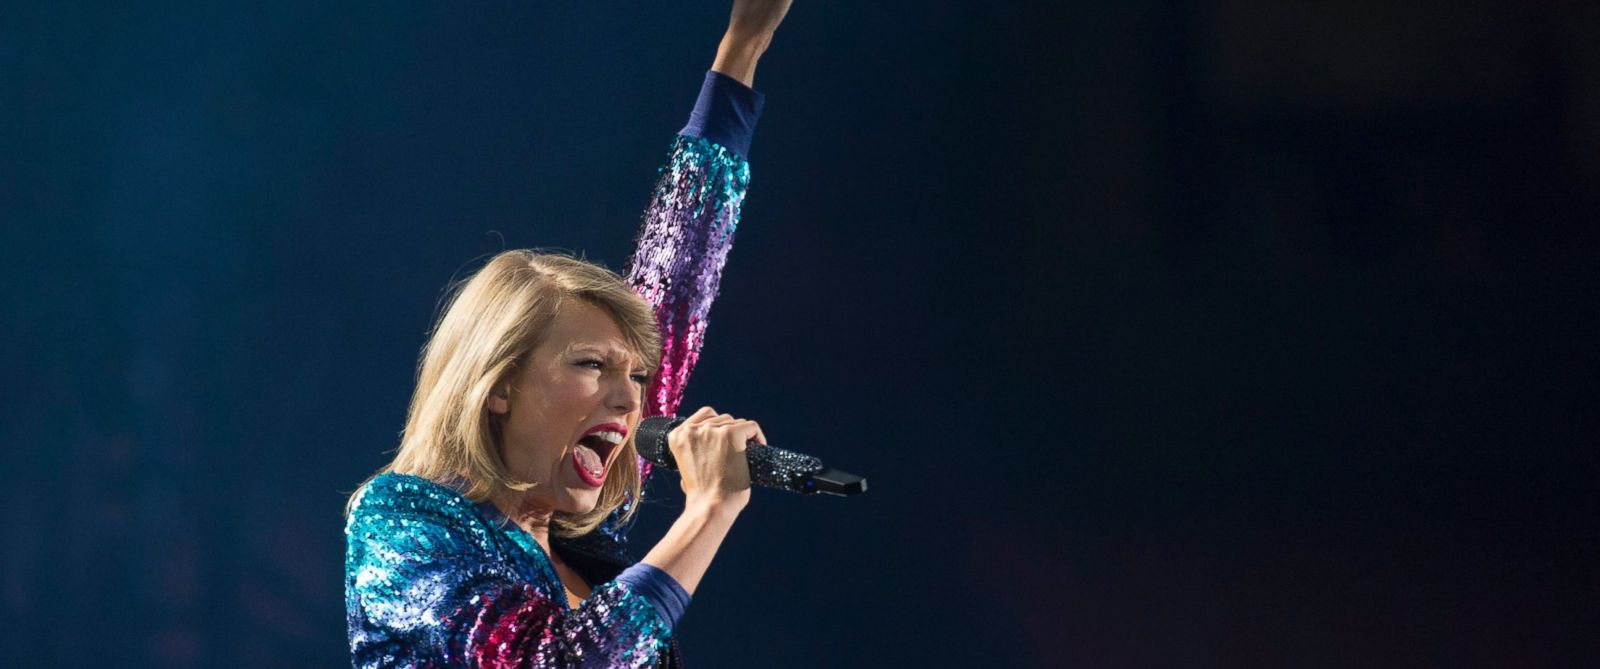 PHOTO: Taylor Swift performs during her 1989 World Tour in Vancouver, =Aug. 1, 2015.